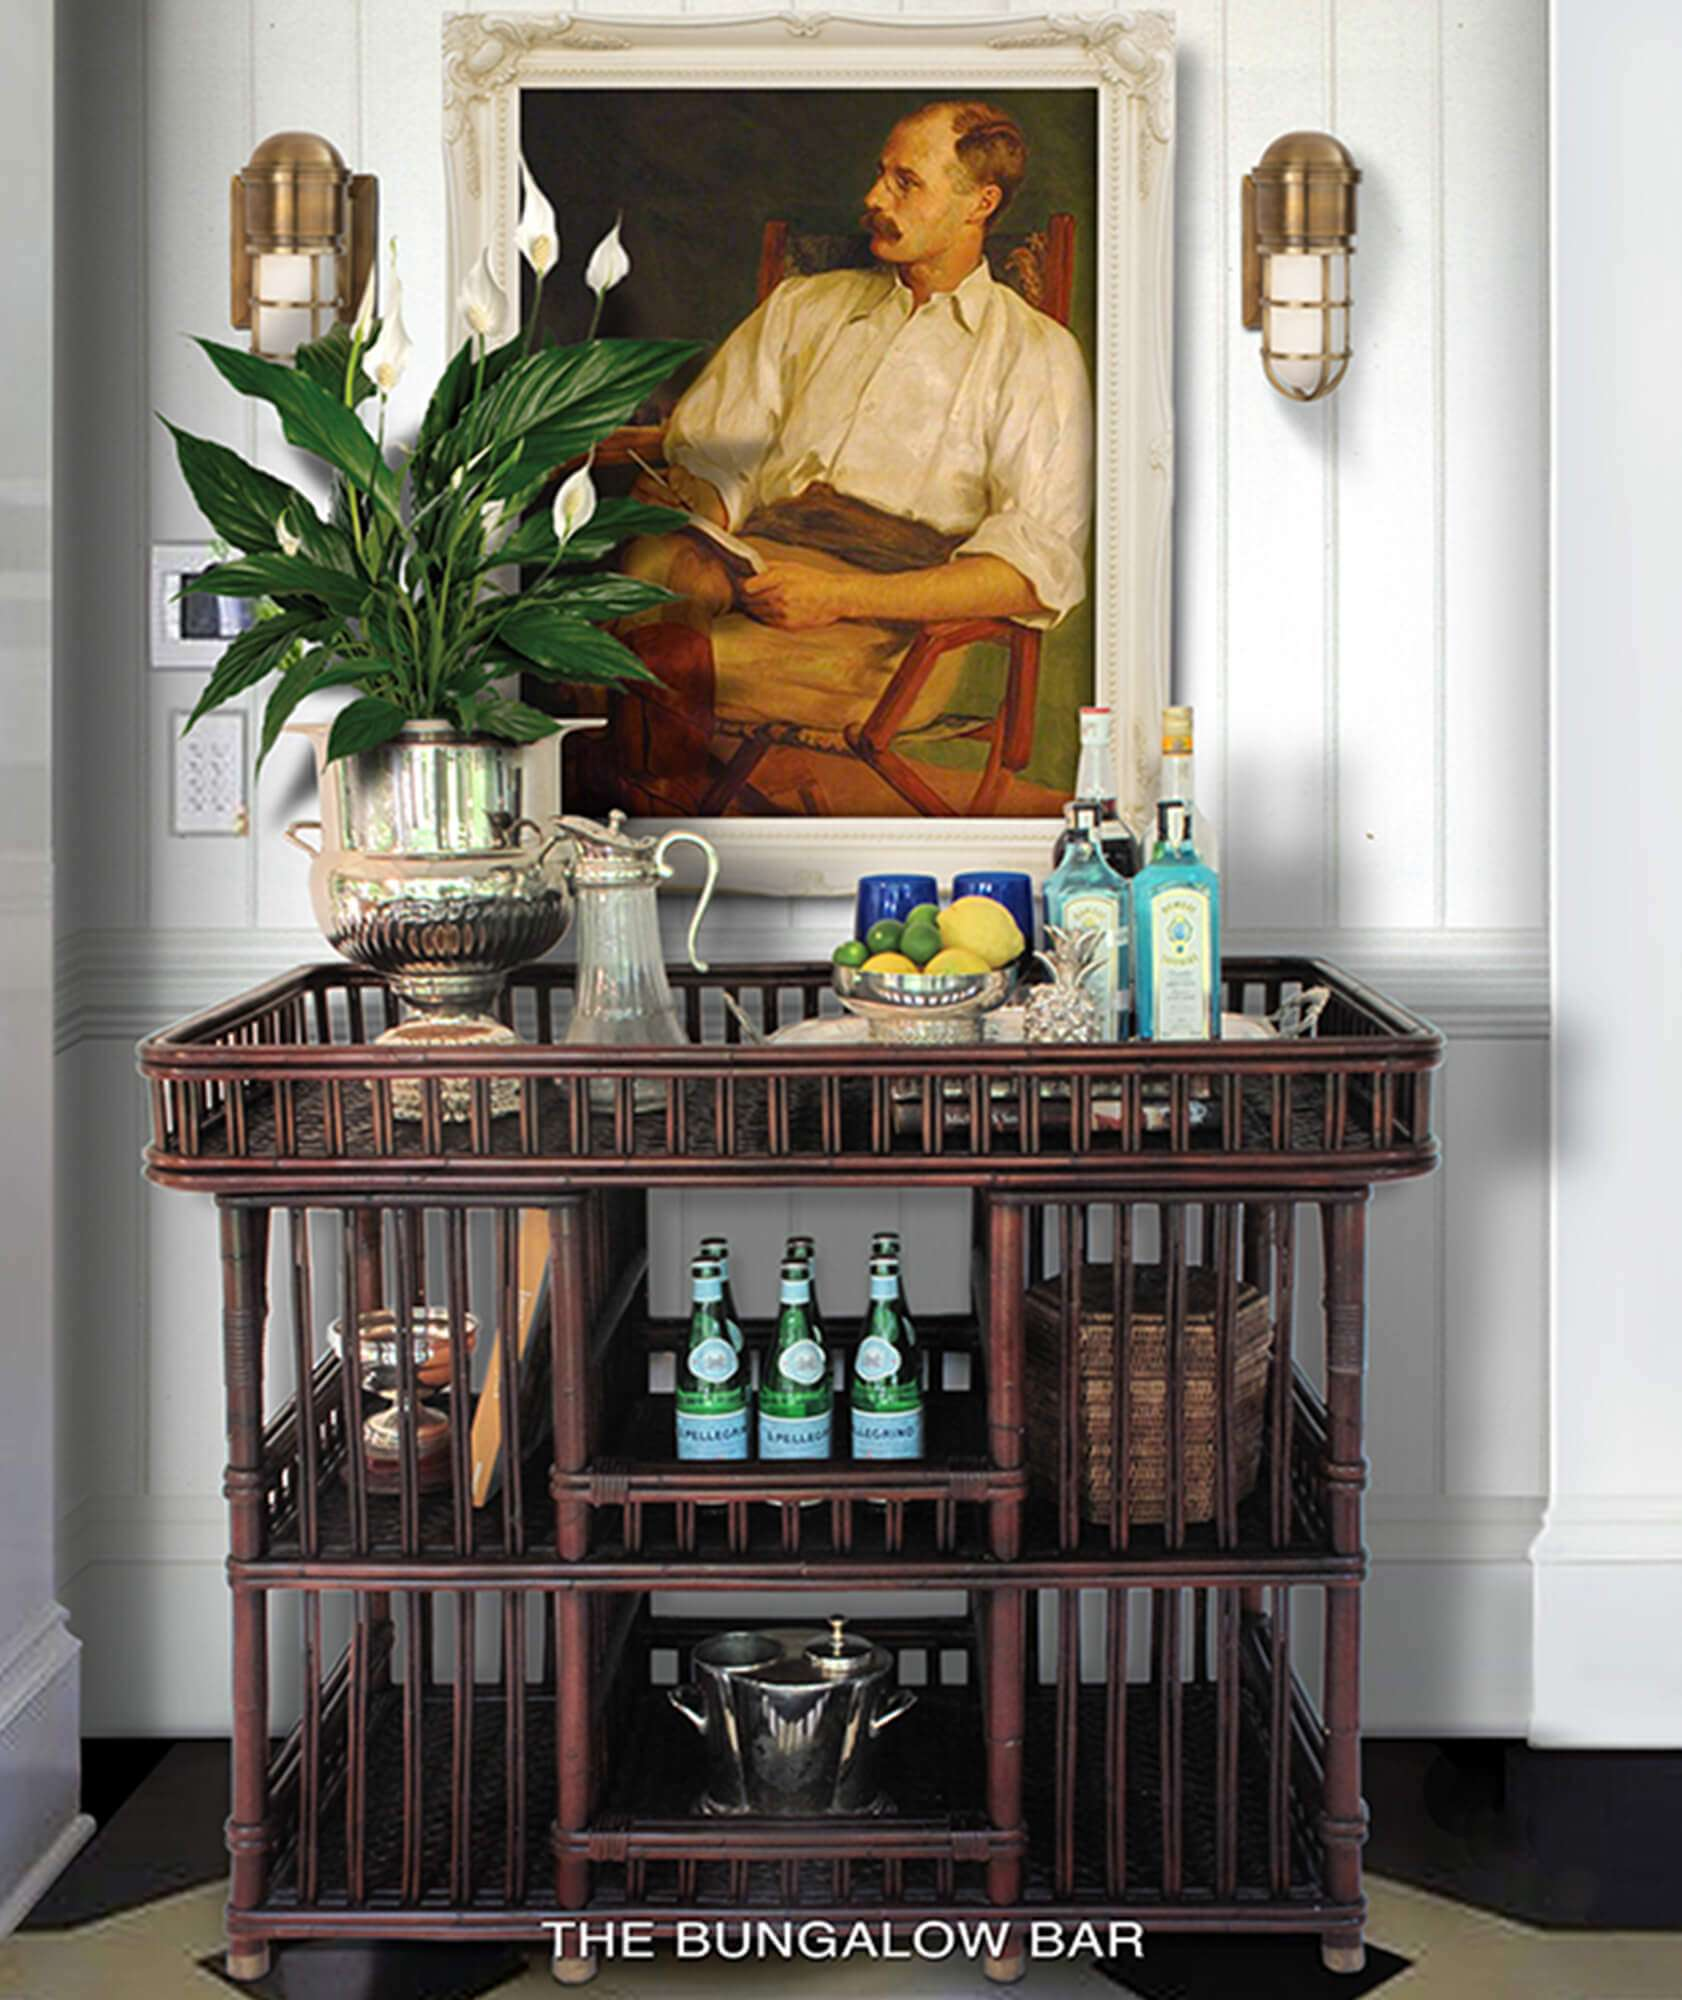 BUNGALOW BAR RIGHTHAND 1 - STUART MEMBERY HOME COLLECTION